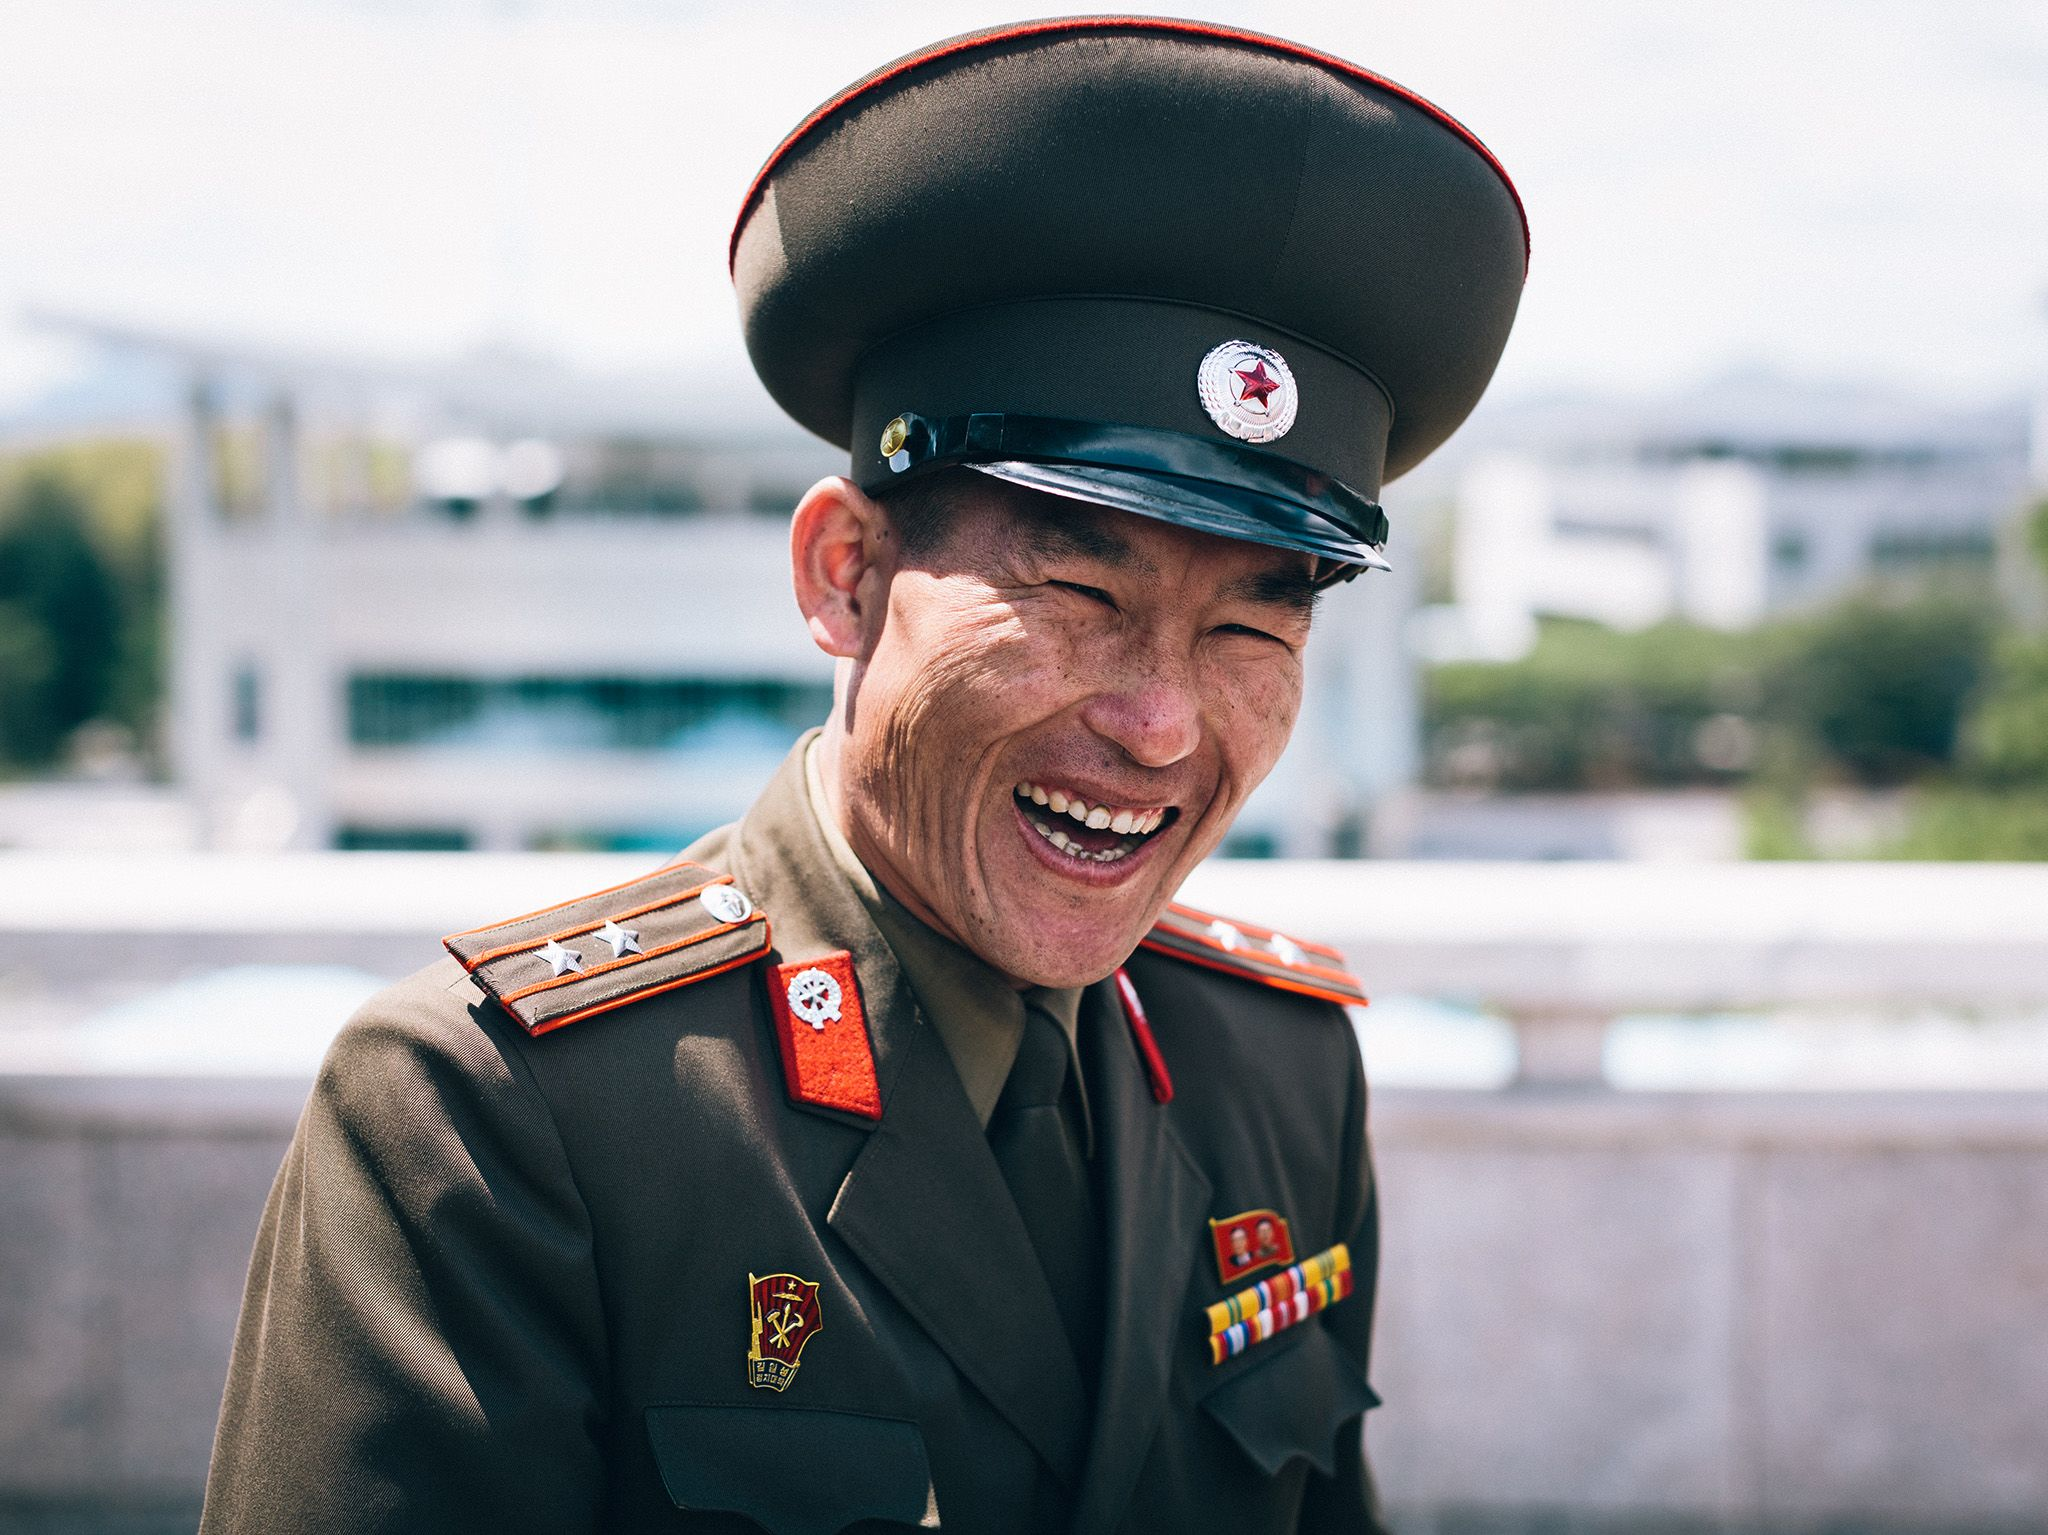 North Korea:  Military guard. This image is from North Korea: Michael Palin's Journey. [Foto del giorno - dicembre 2018]